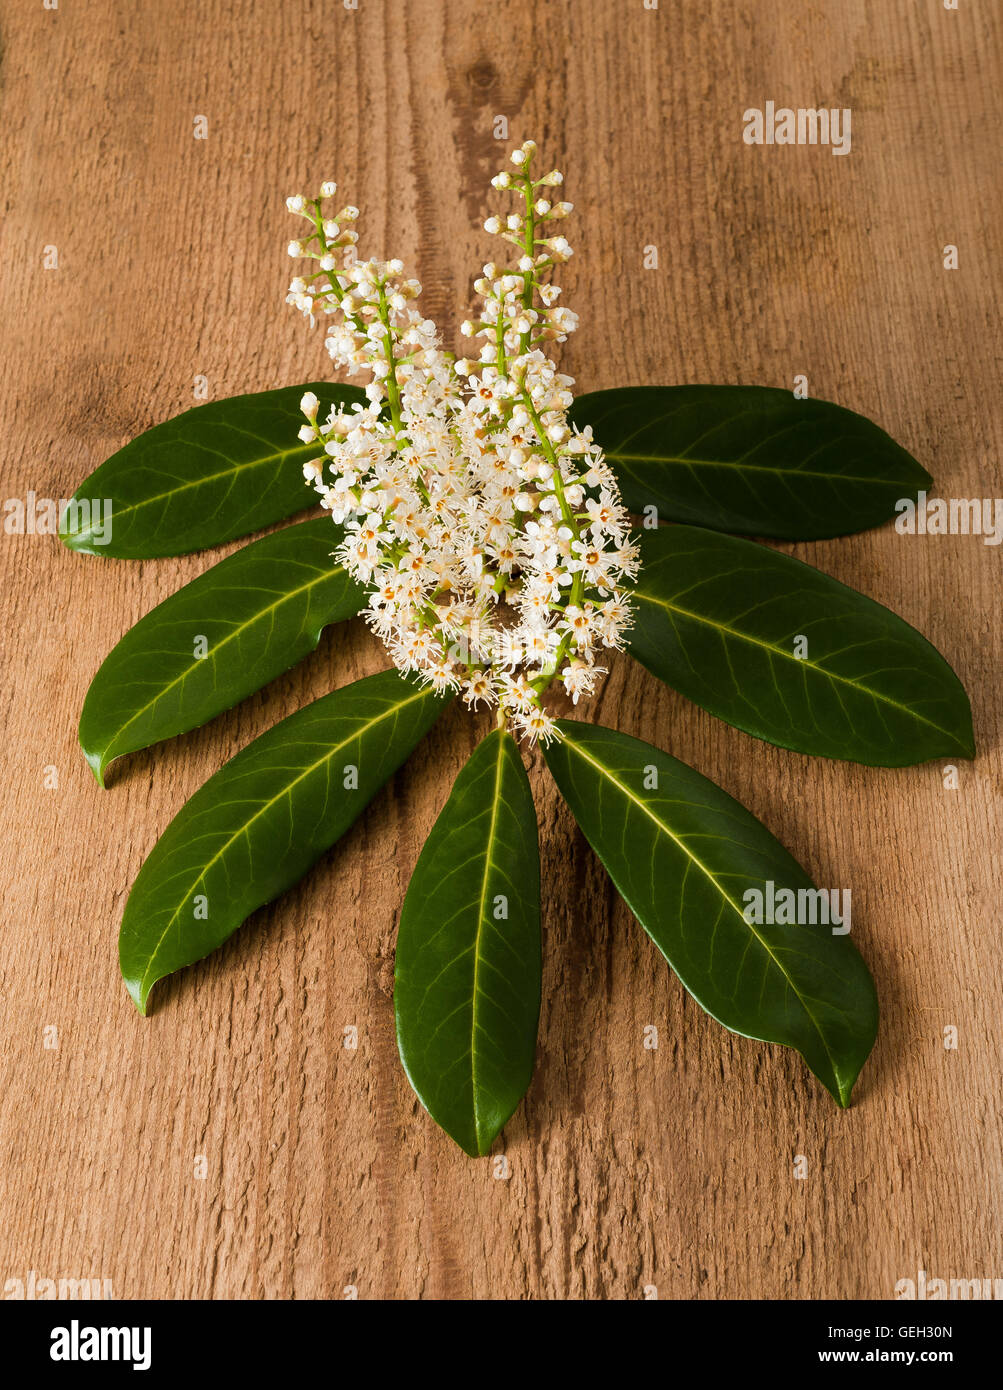 Cherry laurel flowers with leaves Stock Photo